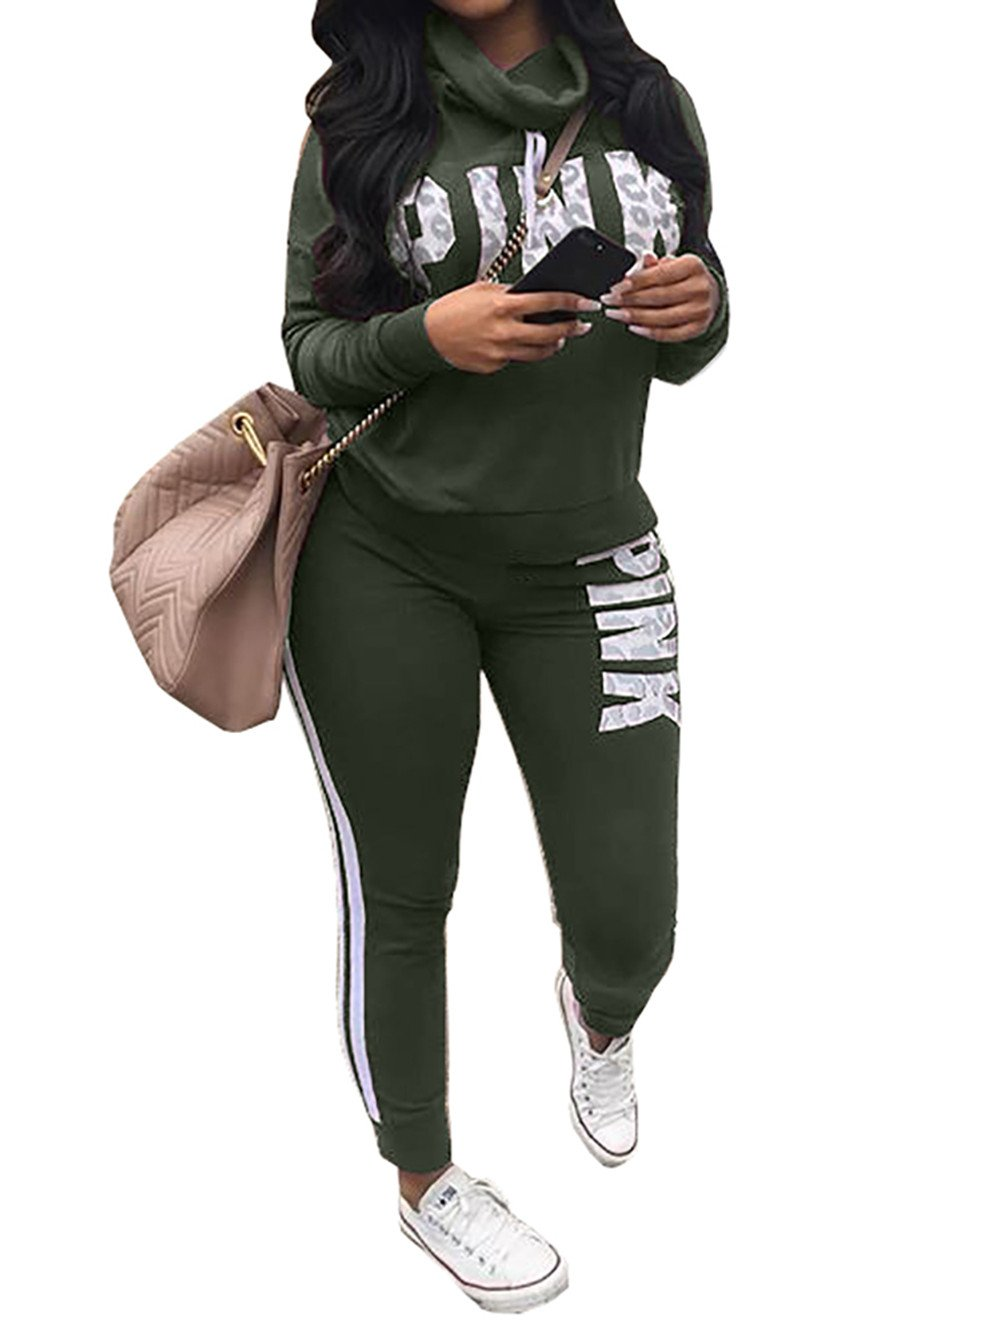 Faisean Womens Two Piece Cowl Neck Outfits Tracksuit Top and Long Pants Sweatsuits Set